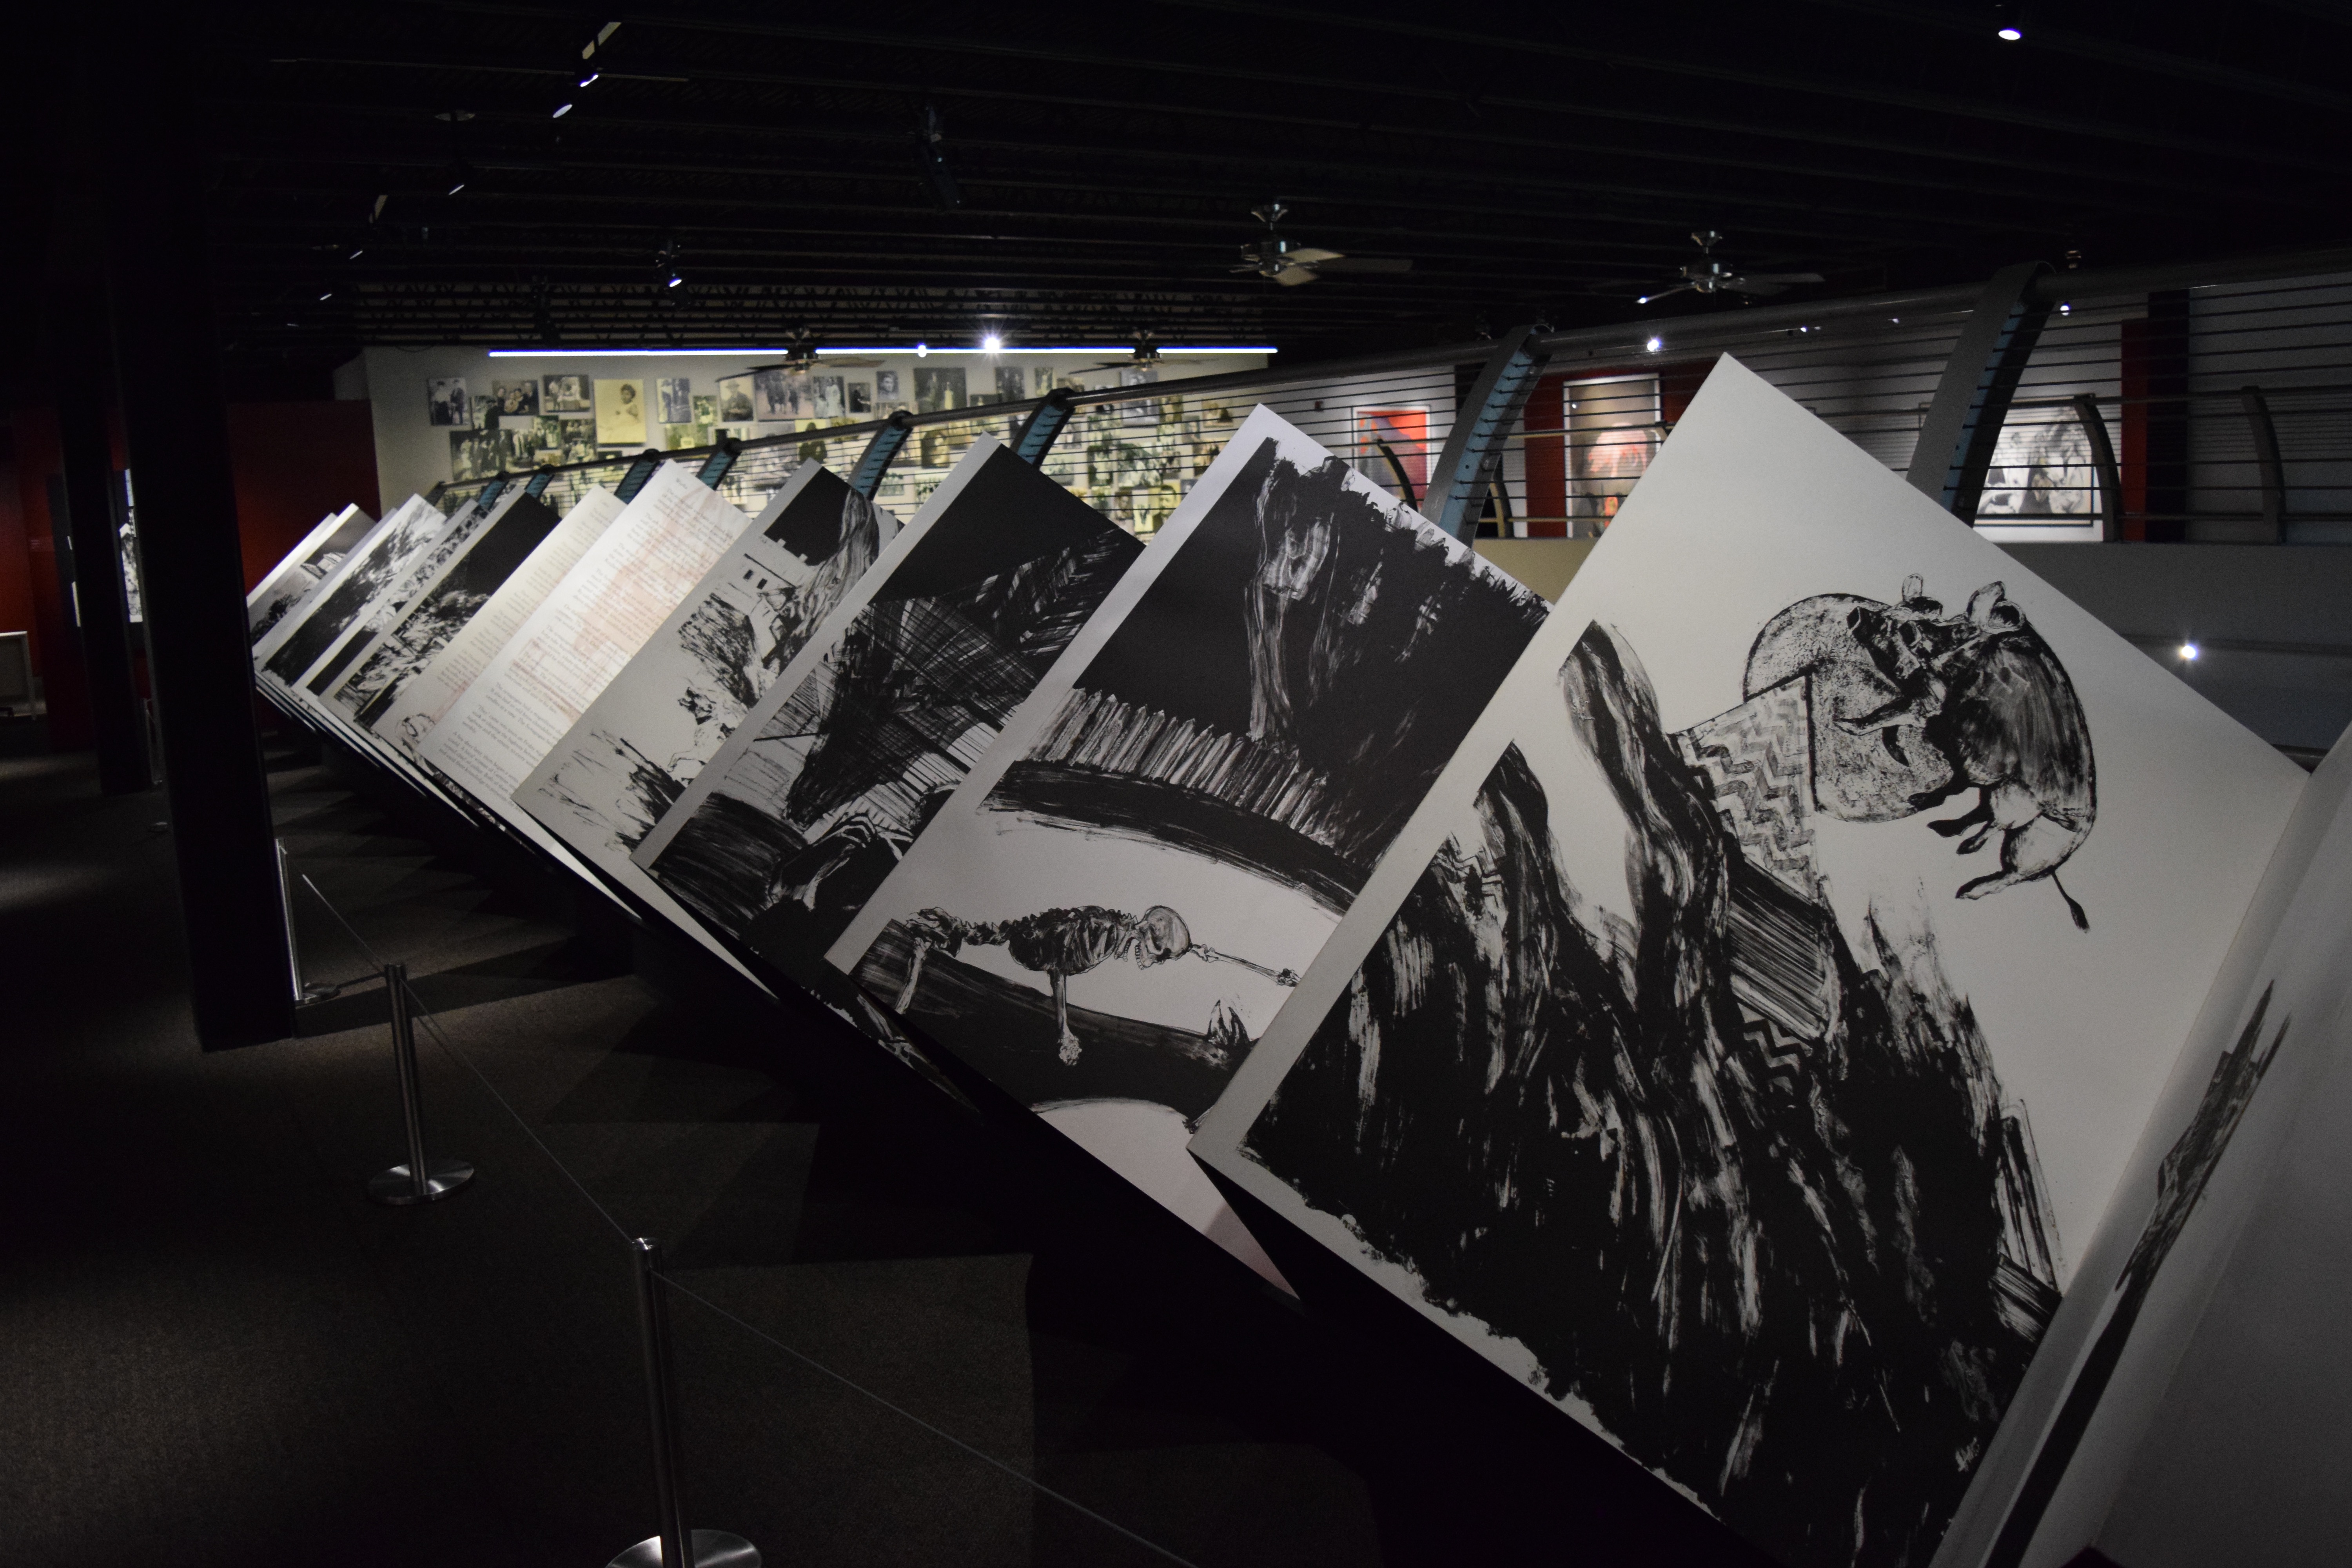 Review: Gruesome new Holocaust museum exhibit is a must see